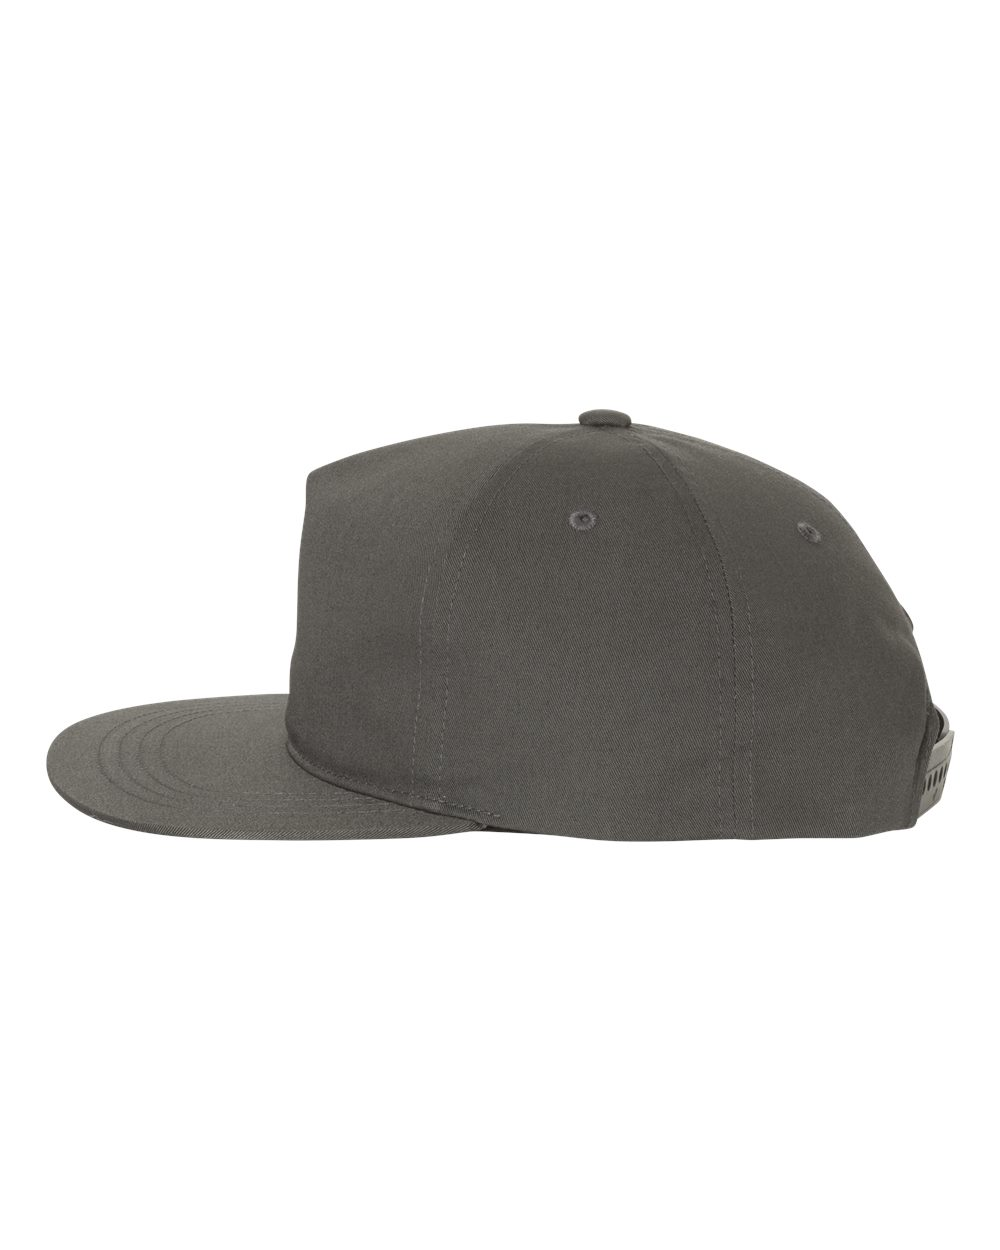 087e581afc622 Yupoong 6502 - Unstructured Five-Panel Snapback Cap  3.88 - Headwear